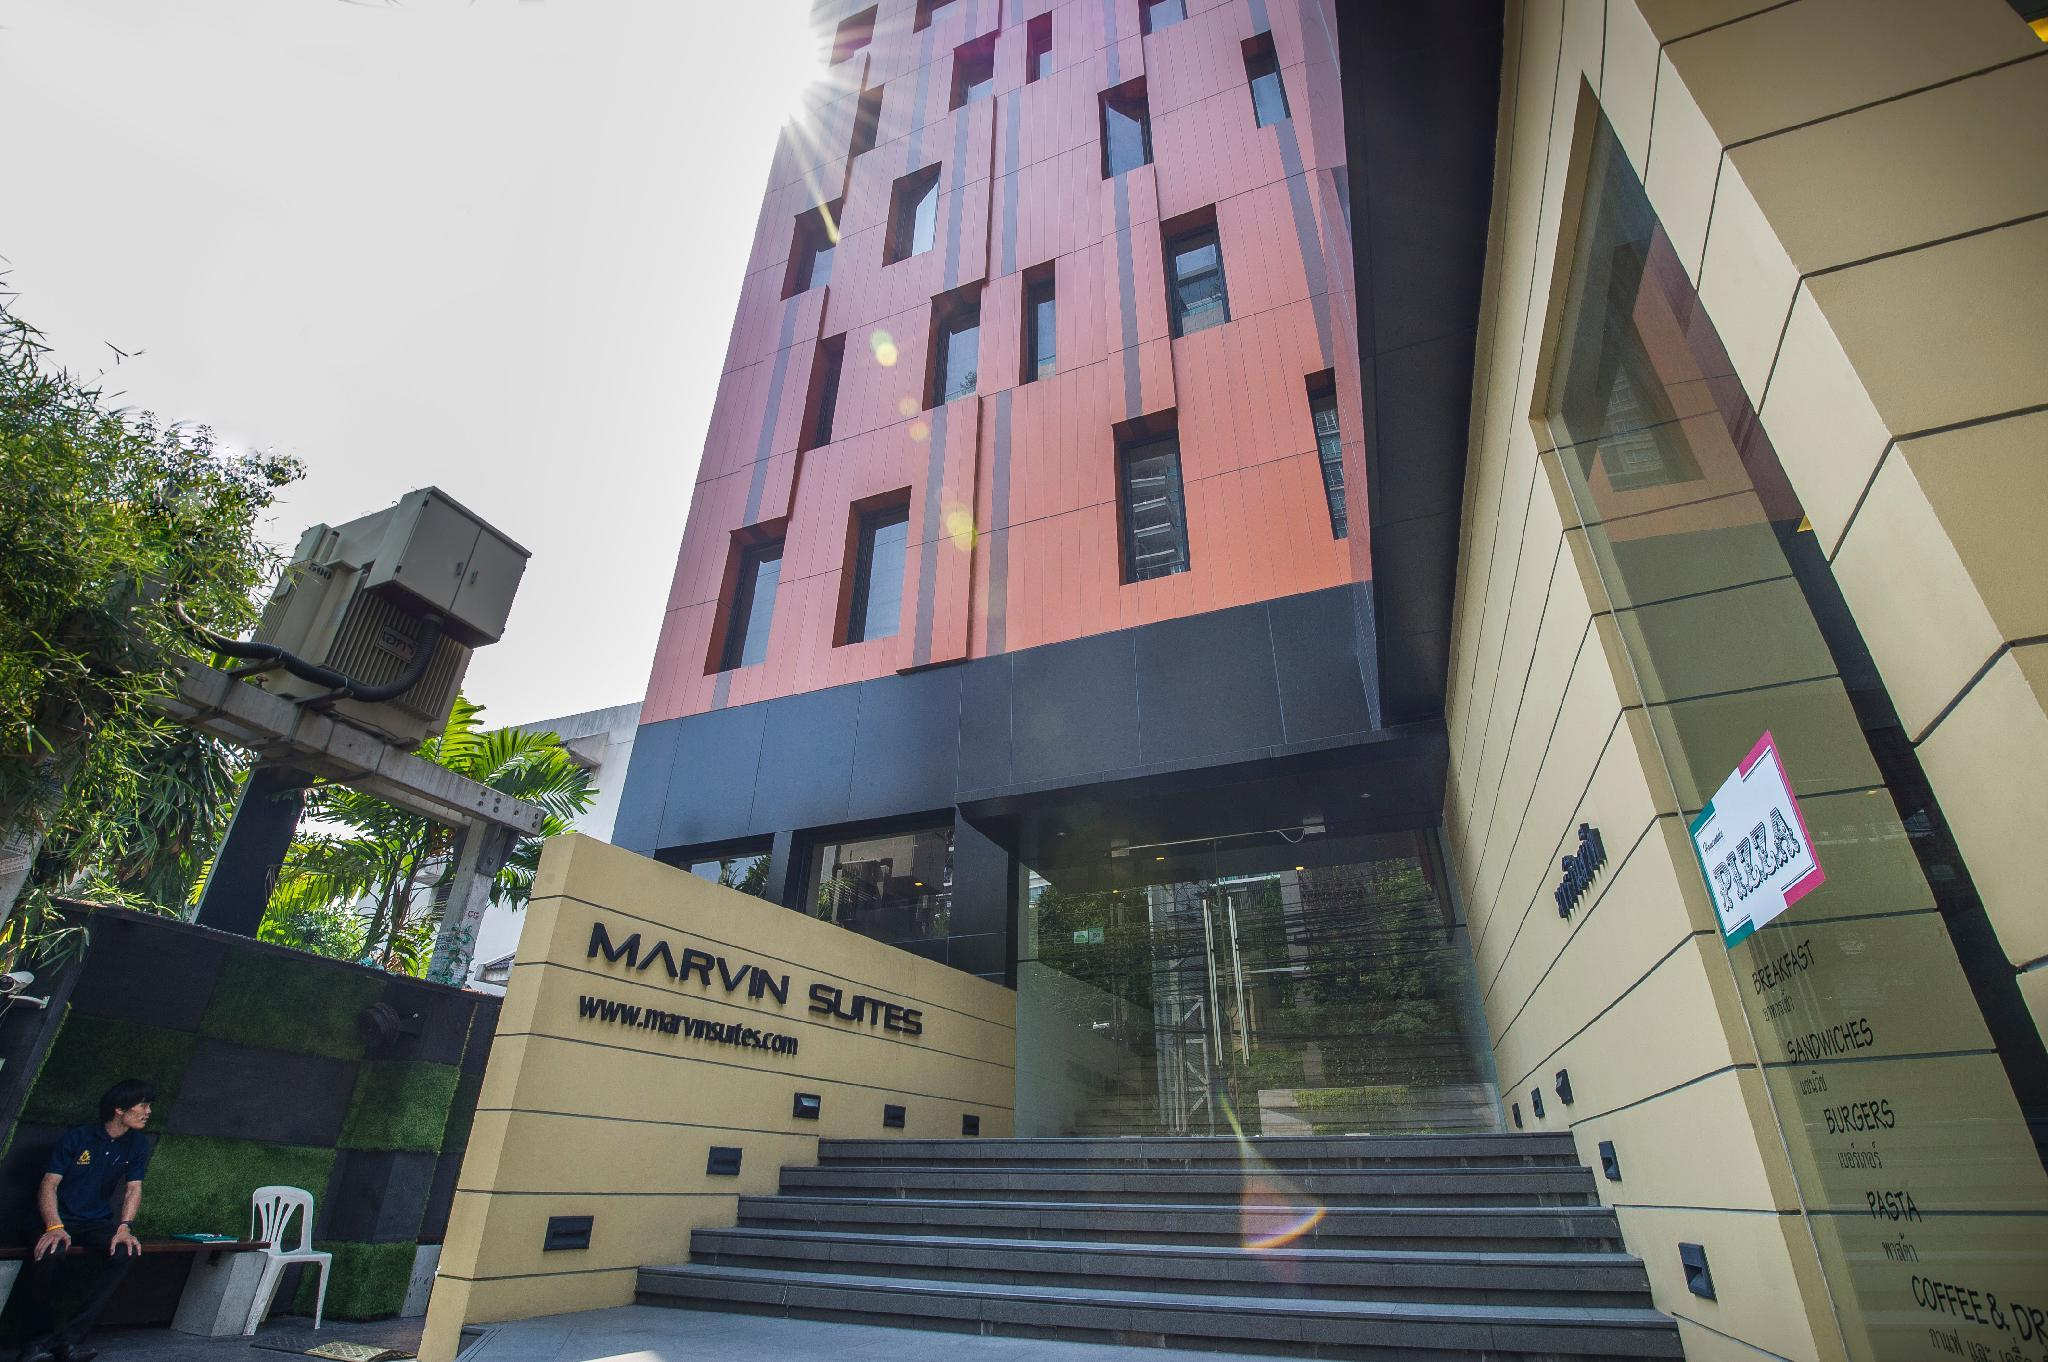 Marvin Suites Hotel